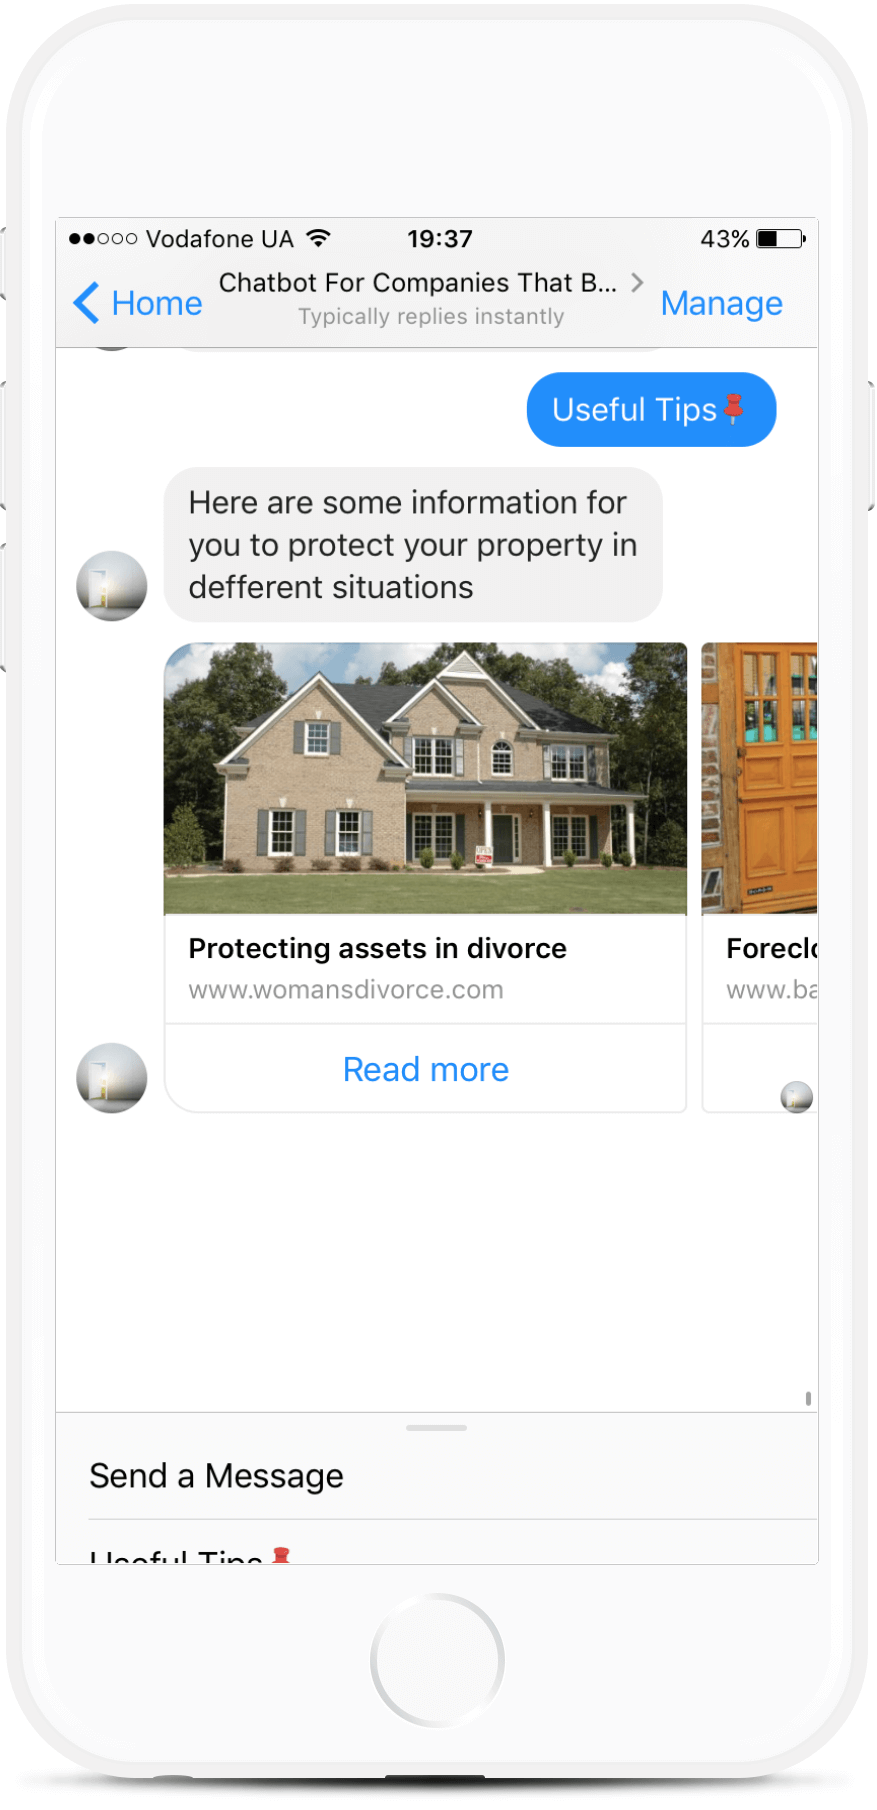 Lead Generation Bot Template For Companies That Buy Houses for $79   #messenger #bottemplates #bots #chatbots #aibots #fbmessenger #botmakers